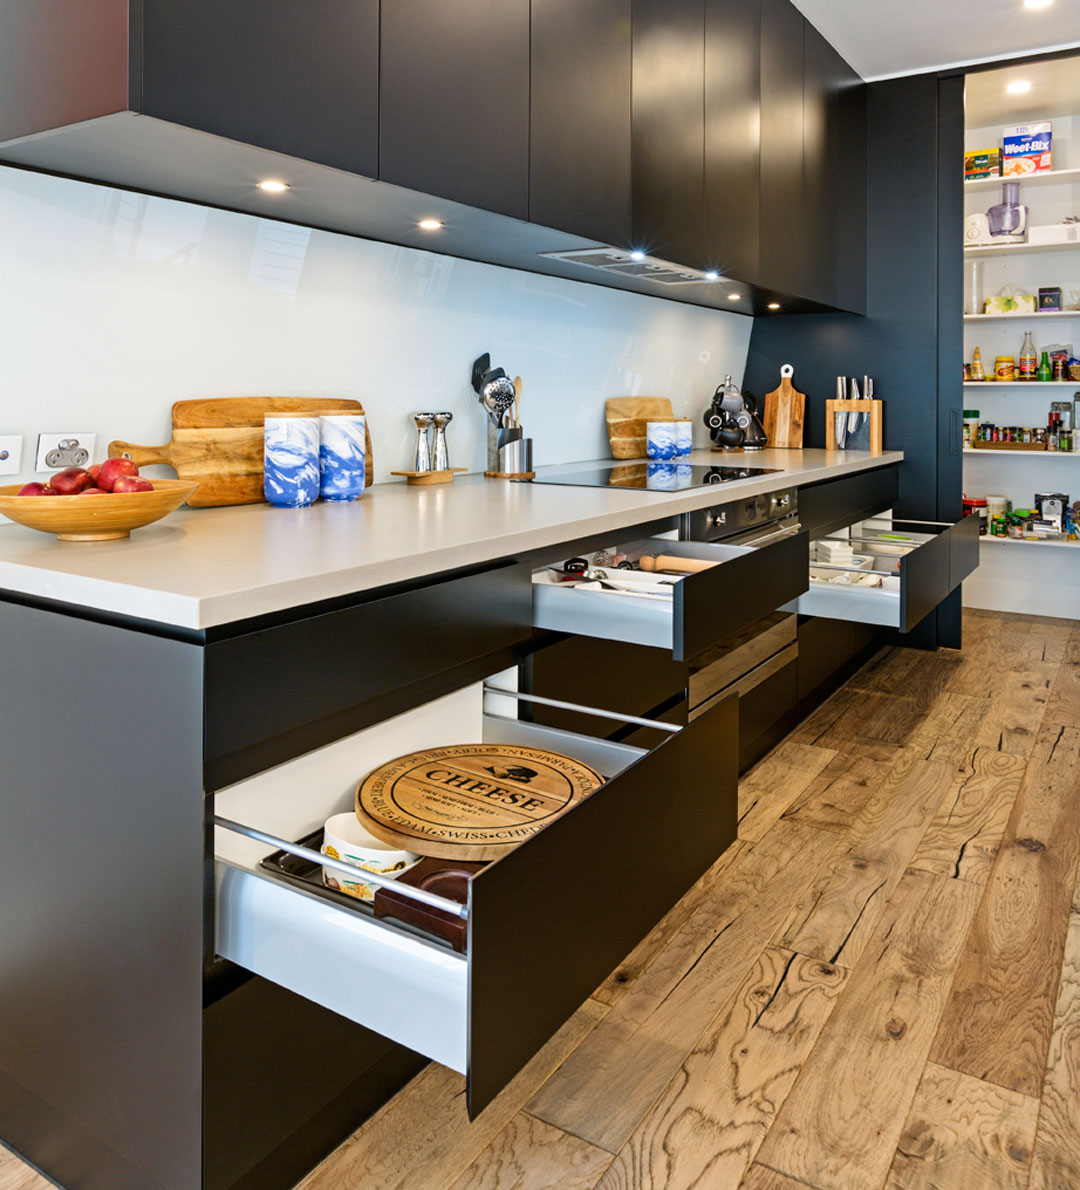 Image Credit: Kitchens by Peter Gill